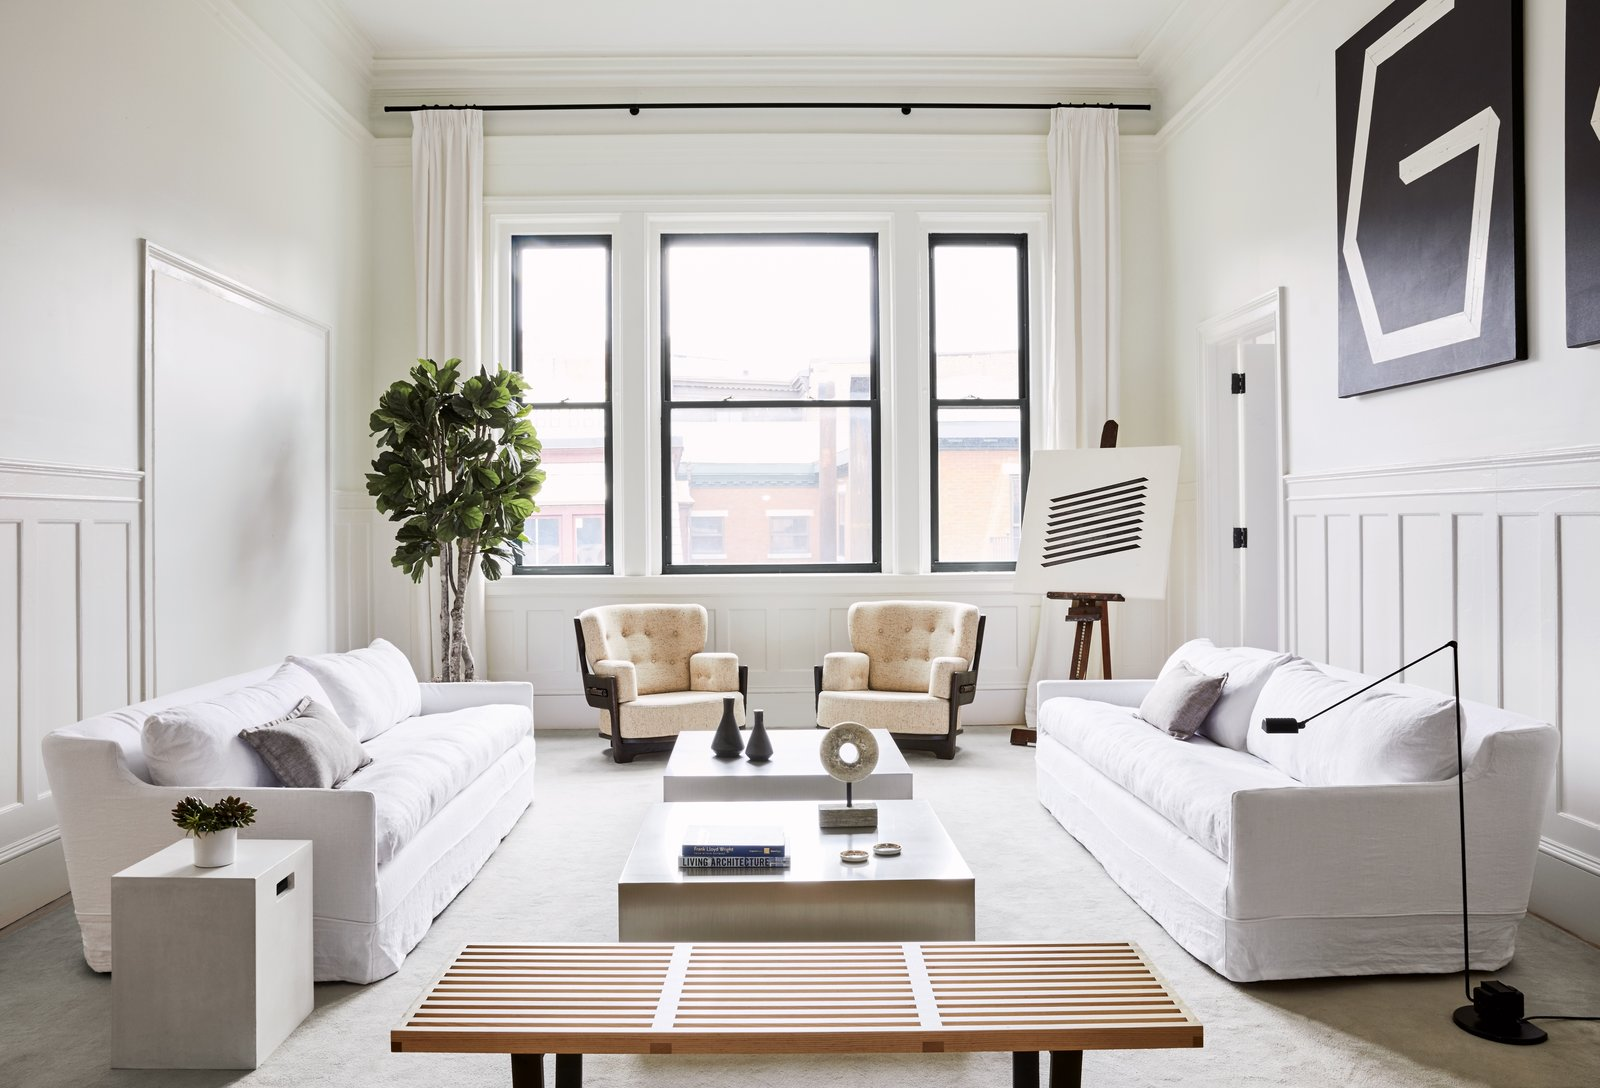 Living Room, Sofa, Chair, Bench, Coffee Tables, and Floor Lighting The pale pink armchairs have a quirky design and add an unexpected and subtle pop of color in an otherwise white interior.  Photo 9 of 10 in 5 Easy Tips From Modern Condos For Creating a Scandinavian-Inspired Interior